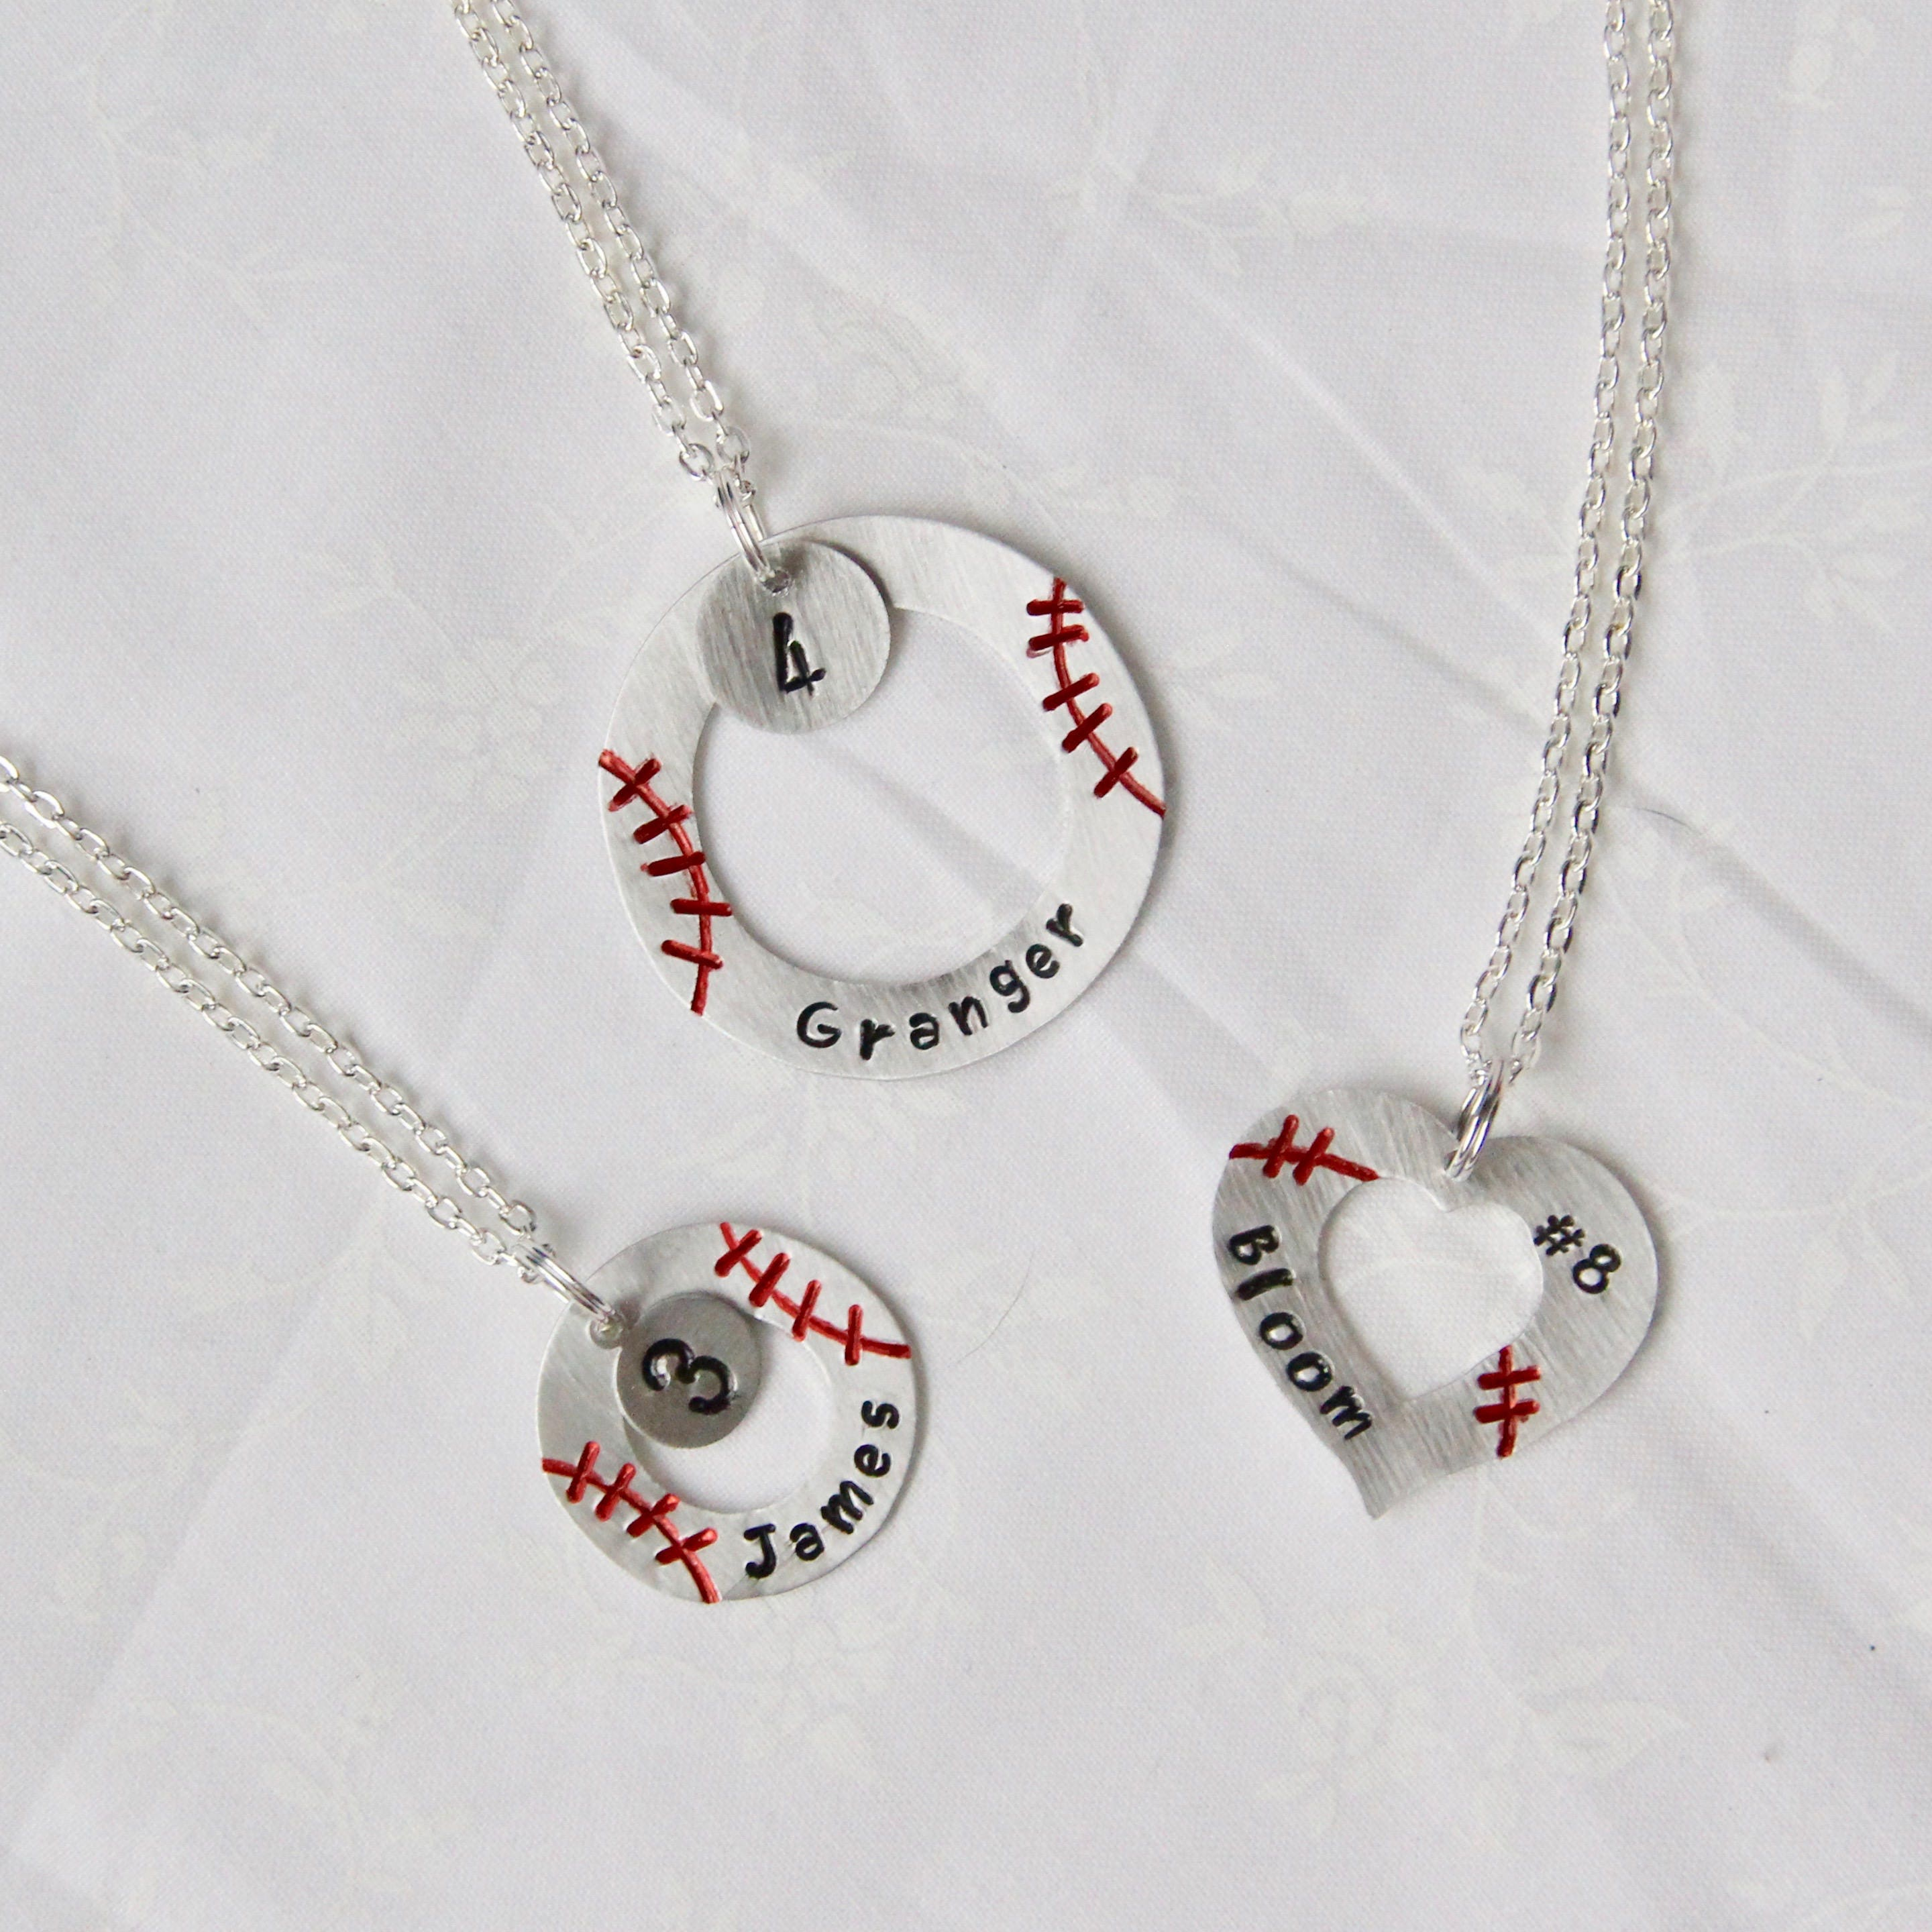 gold chain sterling clever silver wonderful number player fivetool design bat stylish ring baseball original stitch with jewelry pendant looking cross necklace